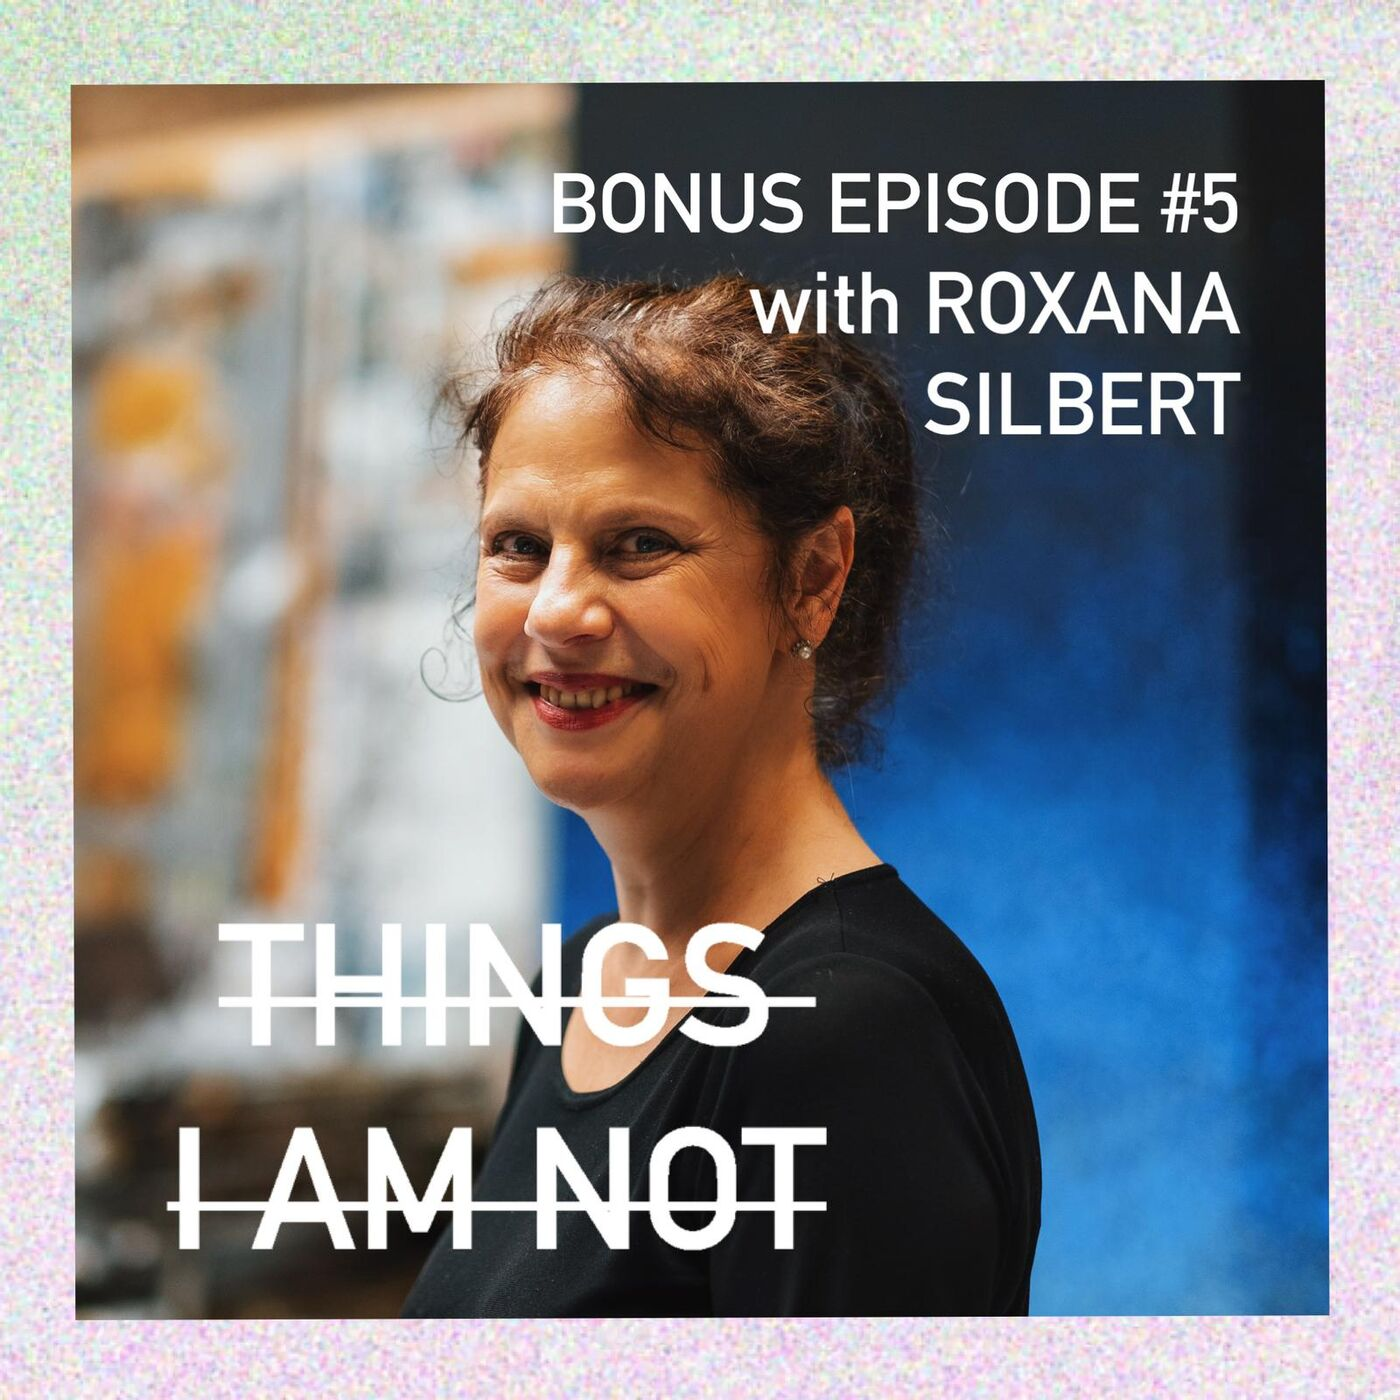 Bonus Episode 05: Theatre and migrations - A conversation with Roxana Silbert